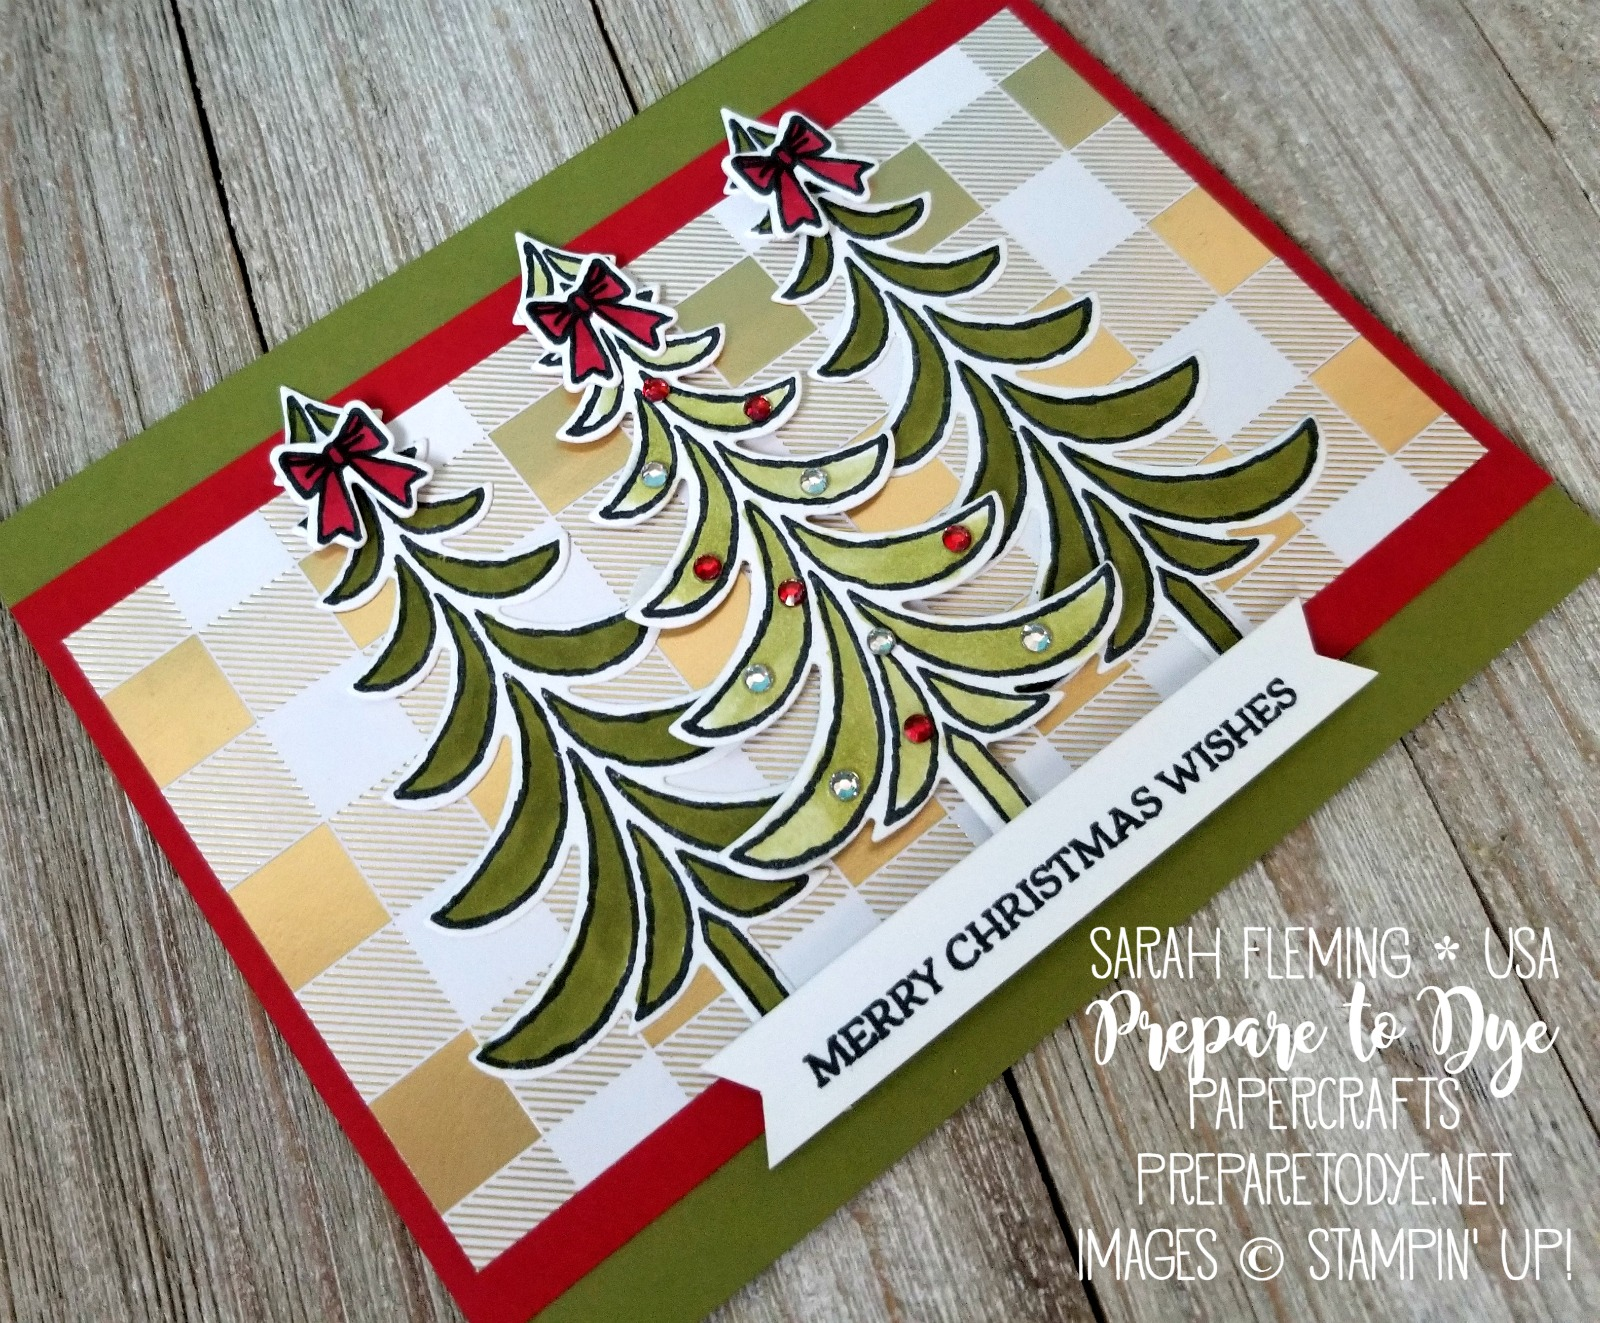 Stampin' Blends Marker Club November projects - Santa's Sleigh stamps, Santa's Sleigh thinlits, Year of Cheer paper - Sarah Fleming - Prepare to Dye Papercrafts